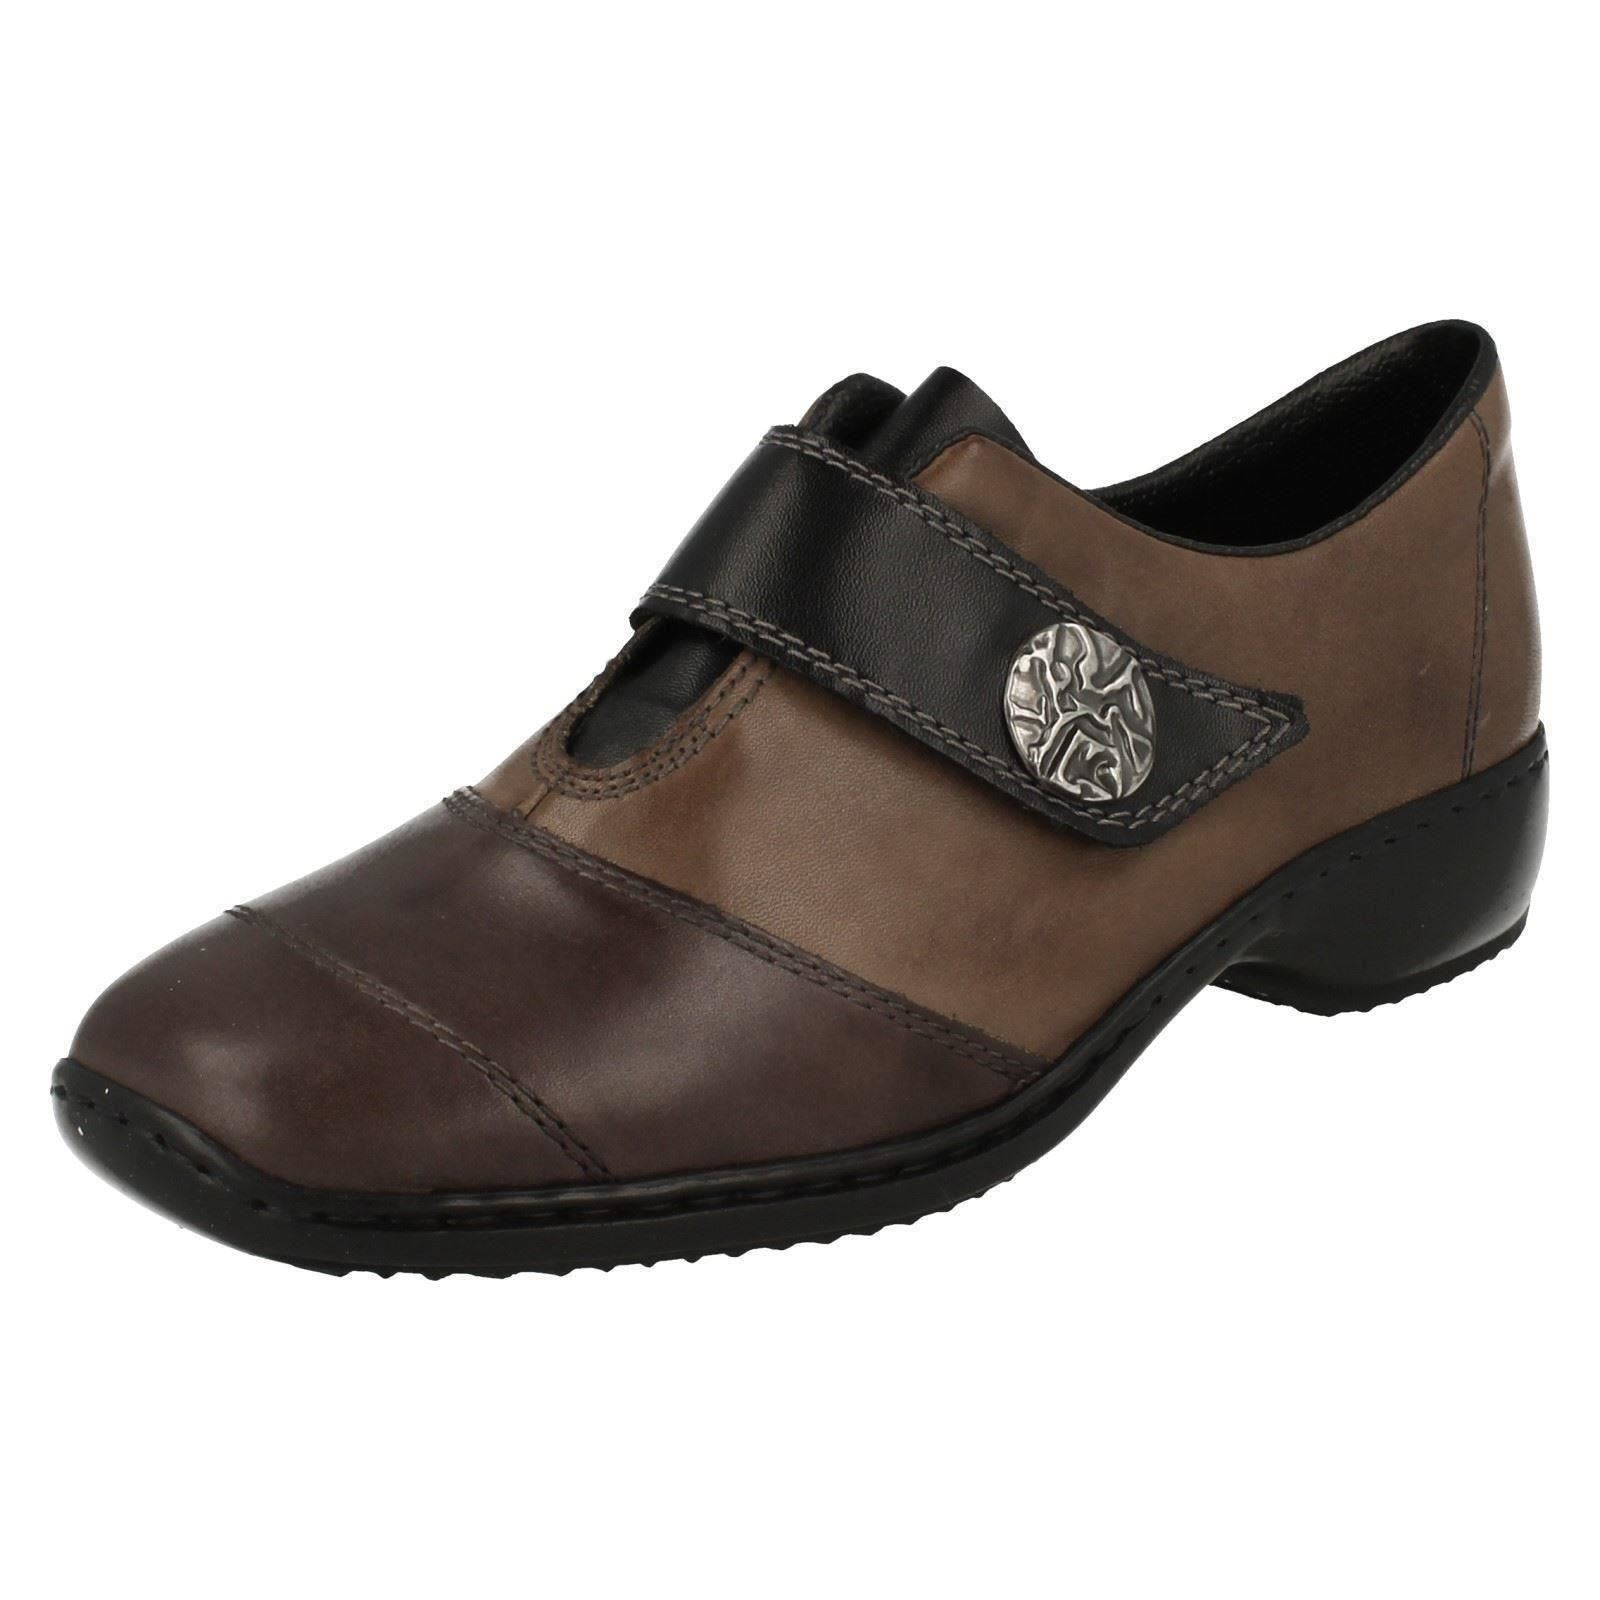 Ladies Rieker Casual Antistress Shoes L3871 Ebay